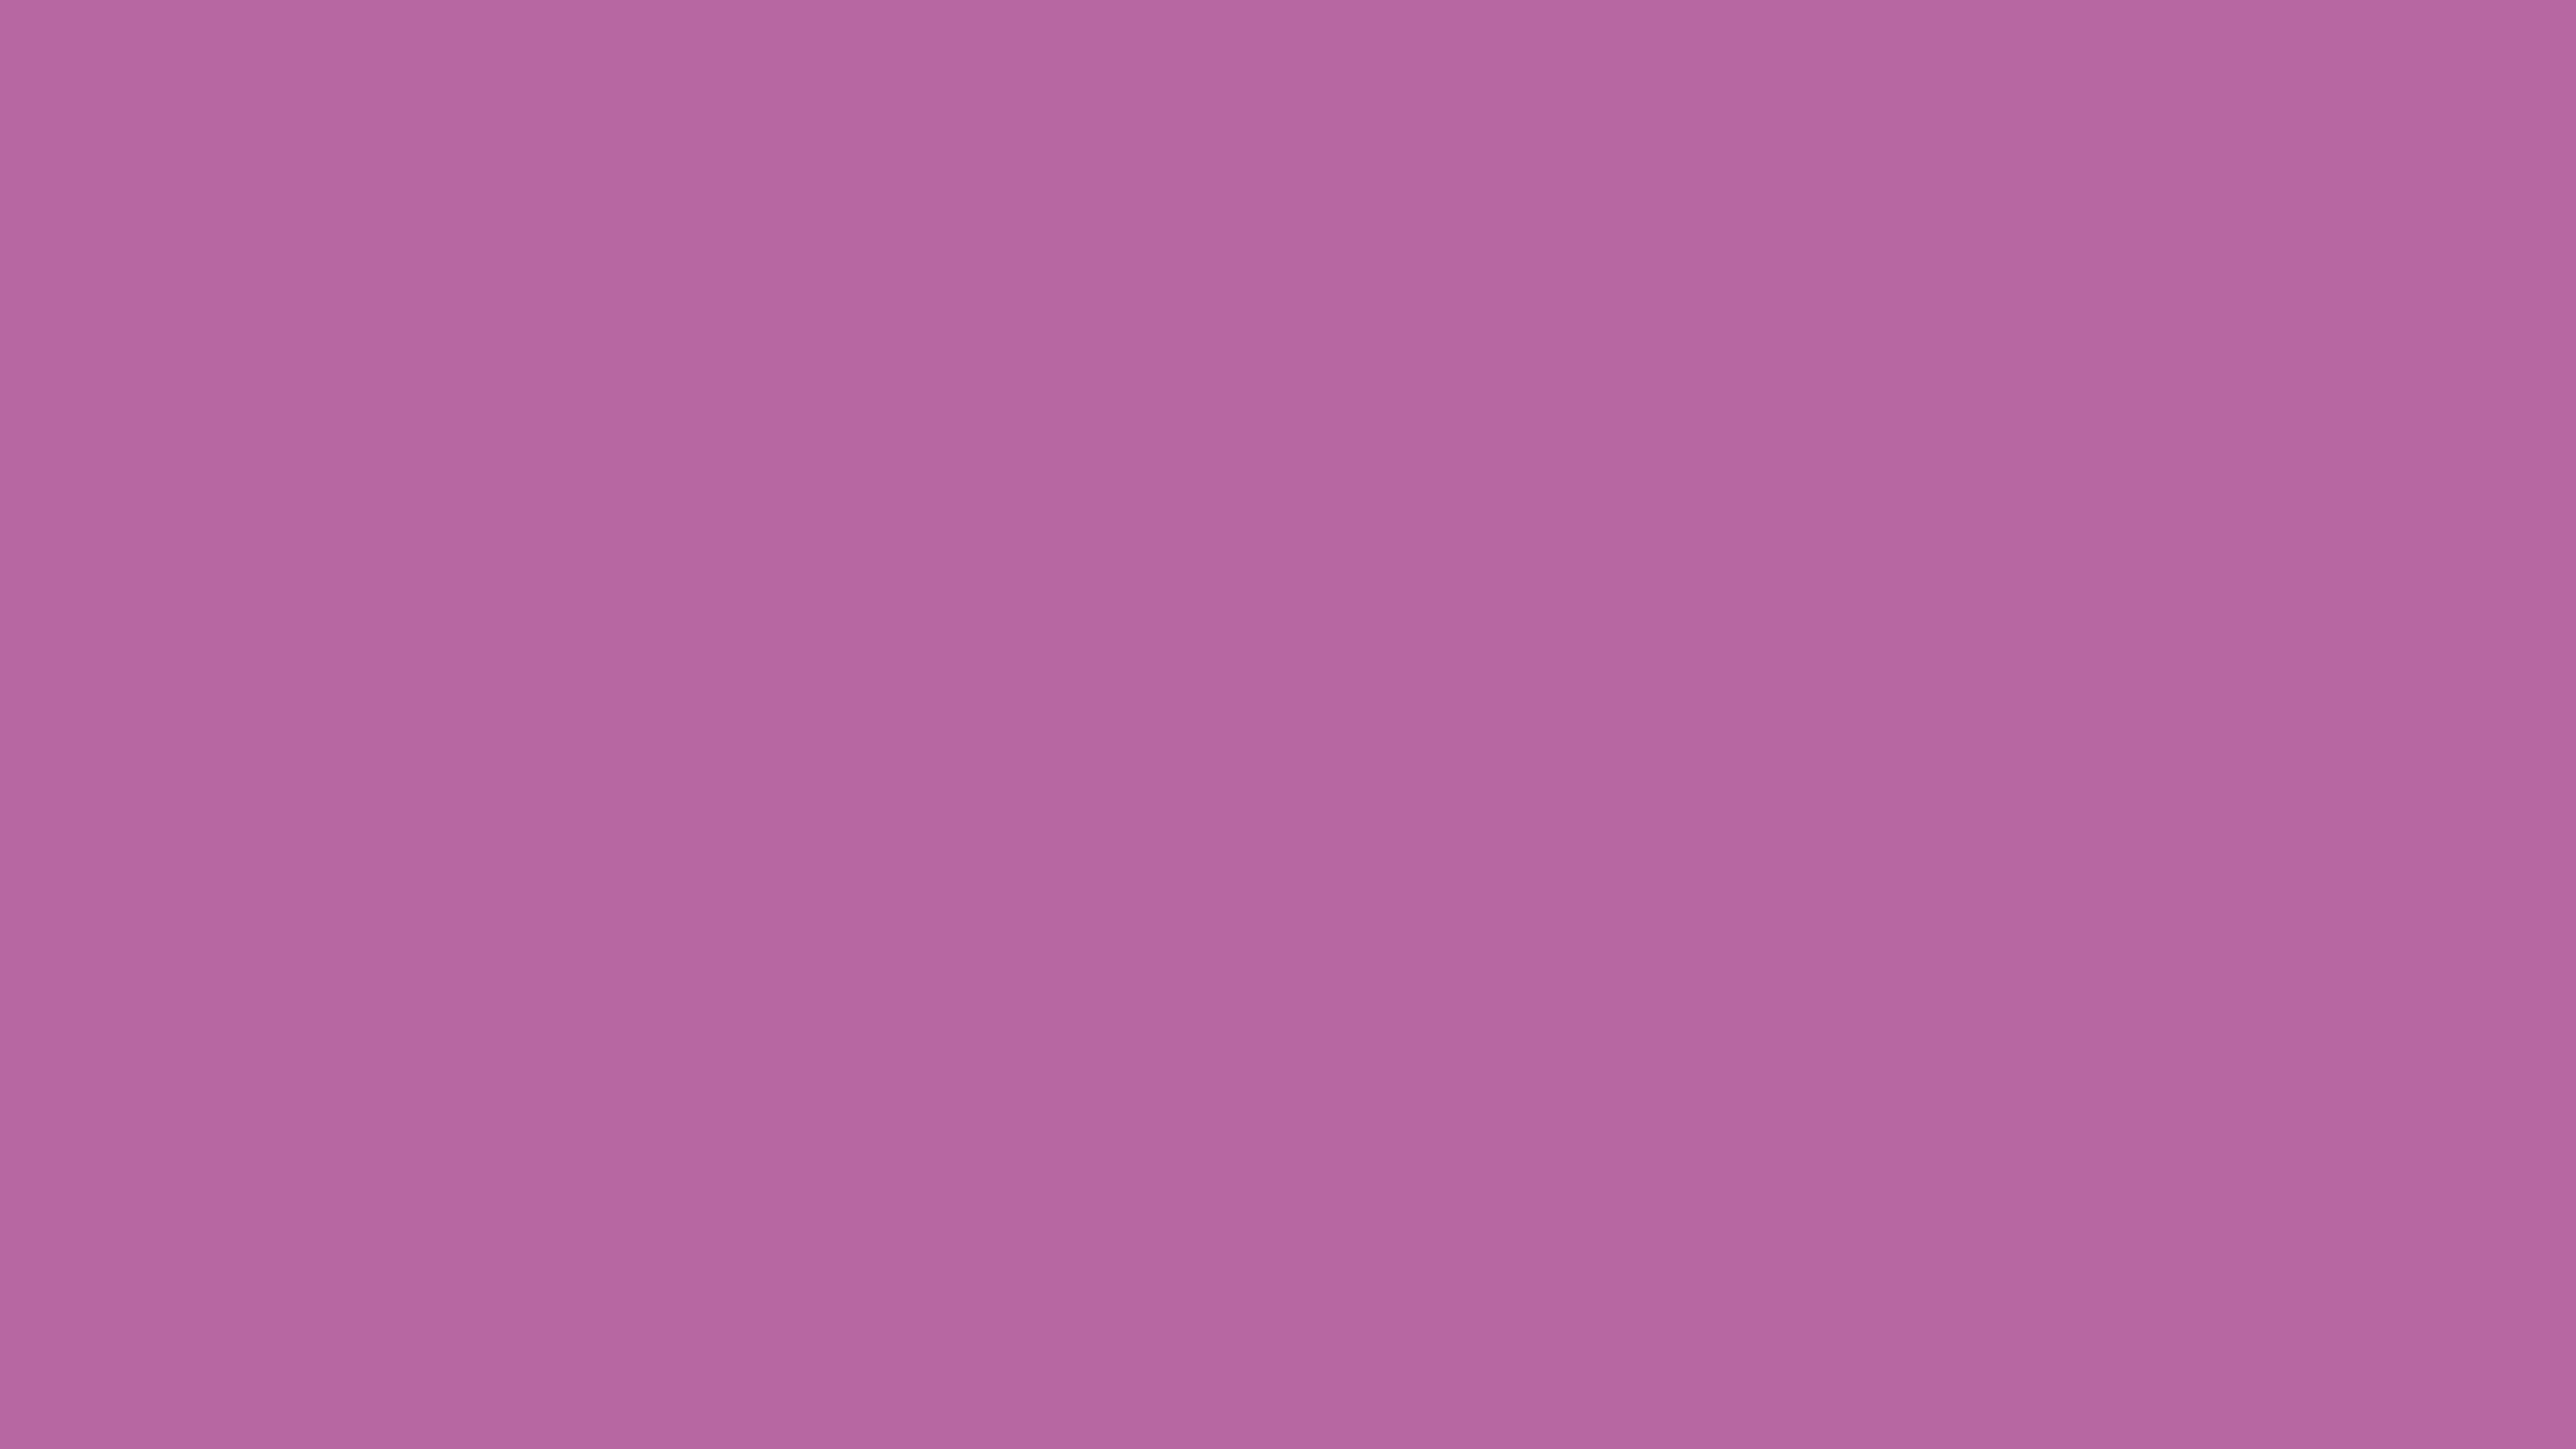 4096x2304 Pearly Purple Solid Color Background